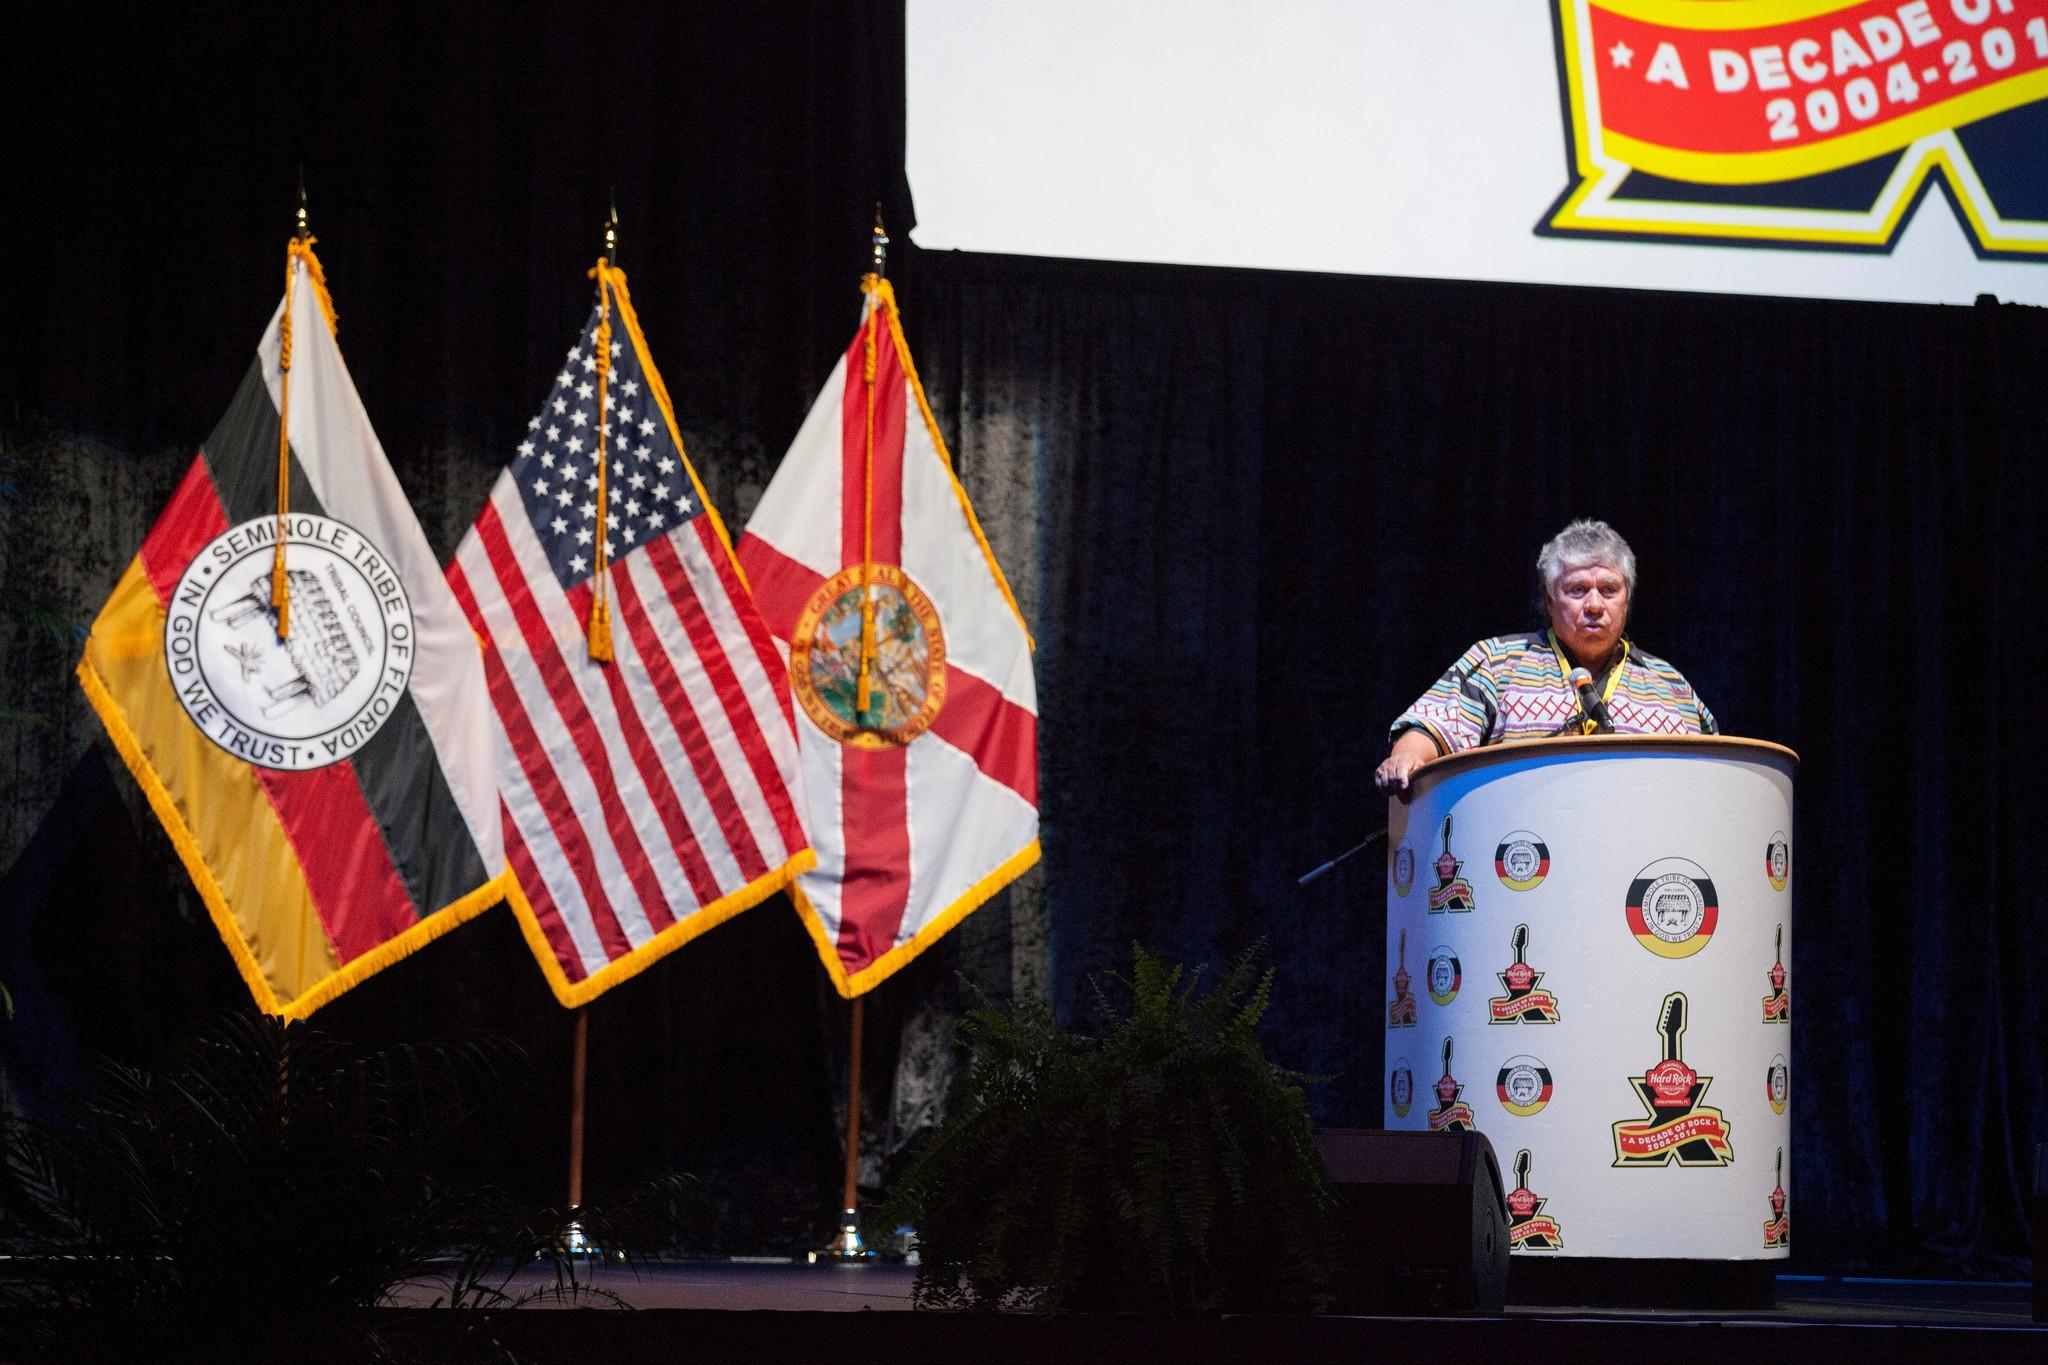 Seminole Chairman James Billie spoke Friday, May 9, at the Seminole Hard Rock Hotel and Casino in Hollywood.